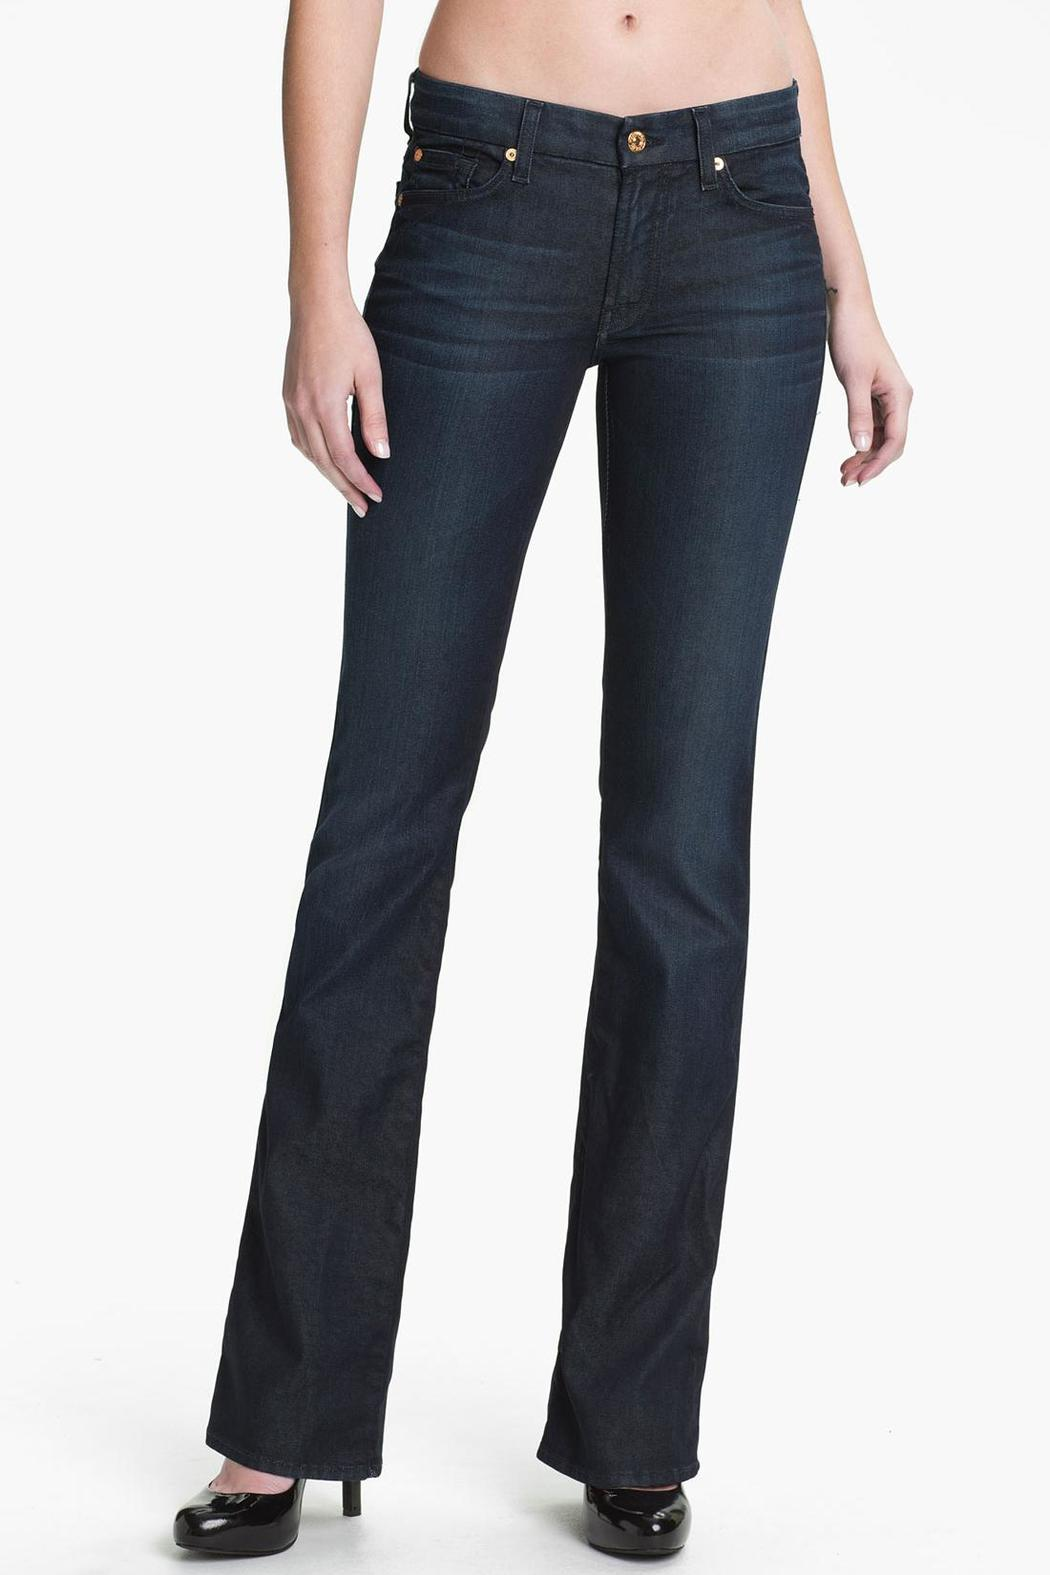 7 For all Mankind Kimmie Bootcut Night-Star - Main Image